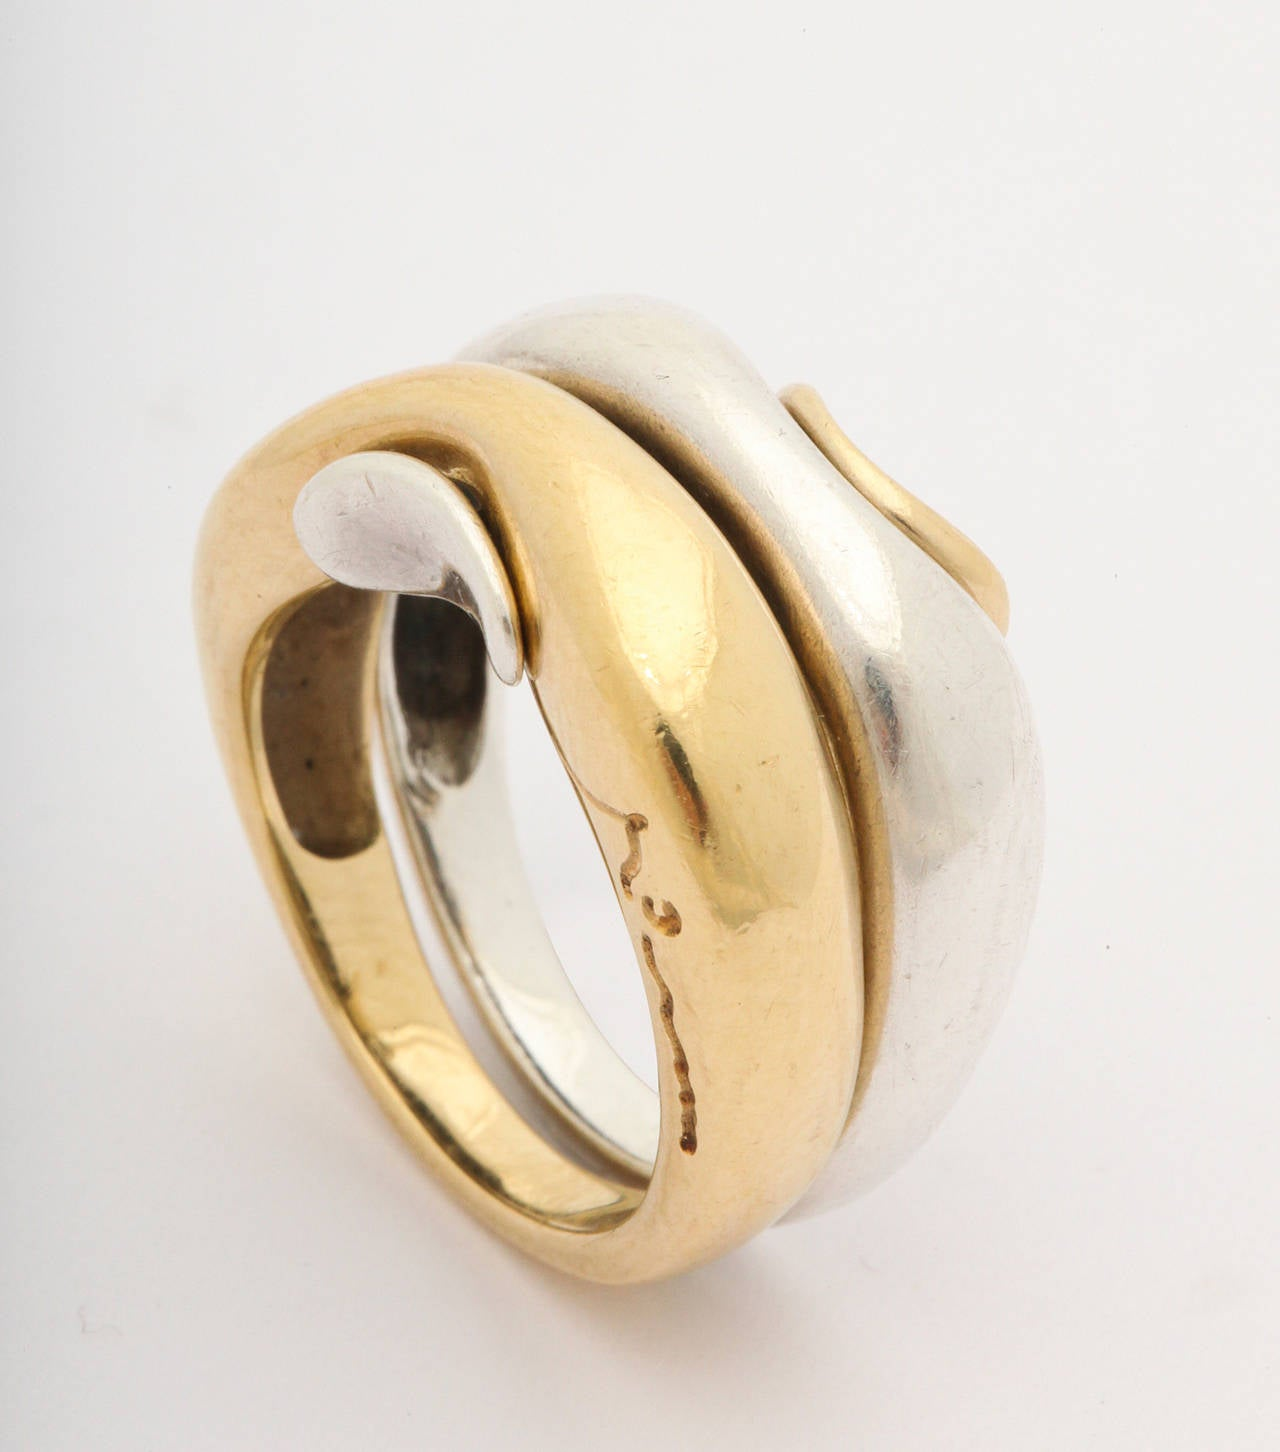 silver gold puzzle ring by minas spiridus for george